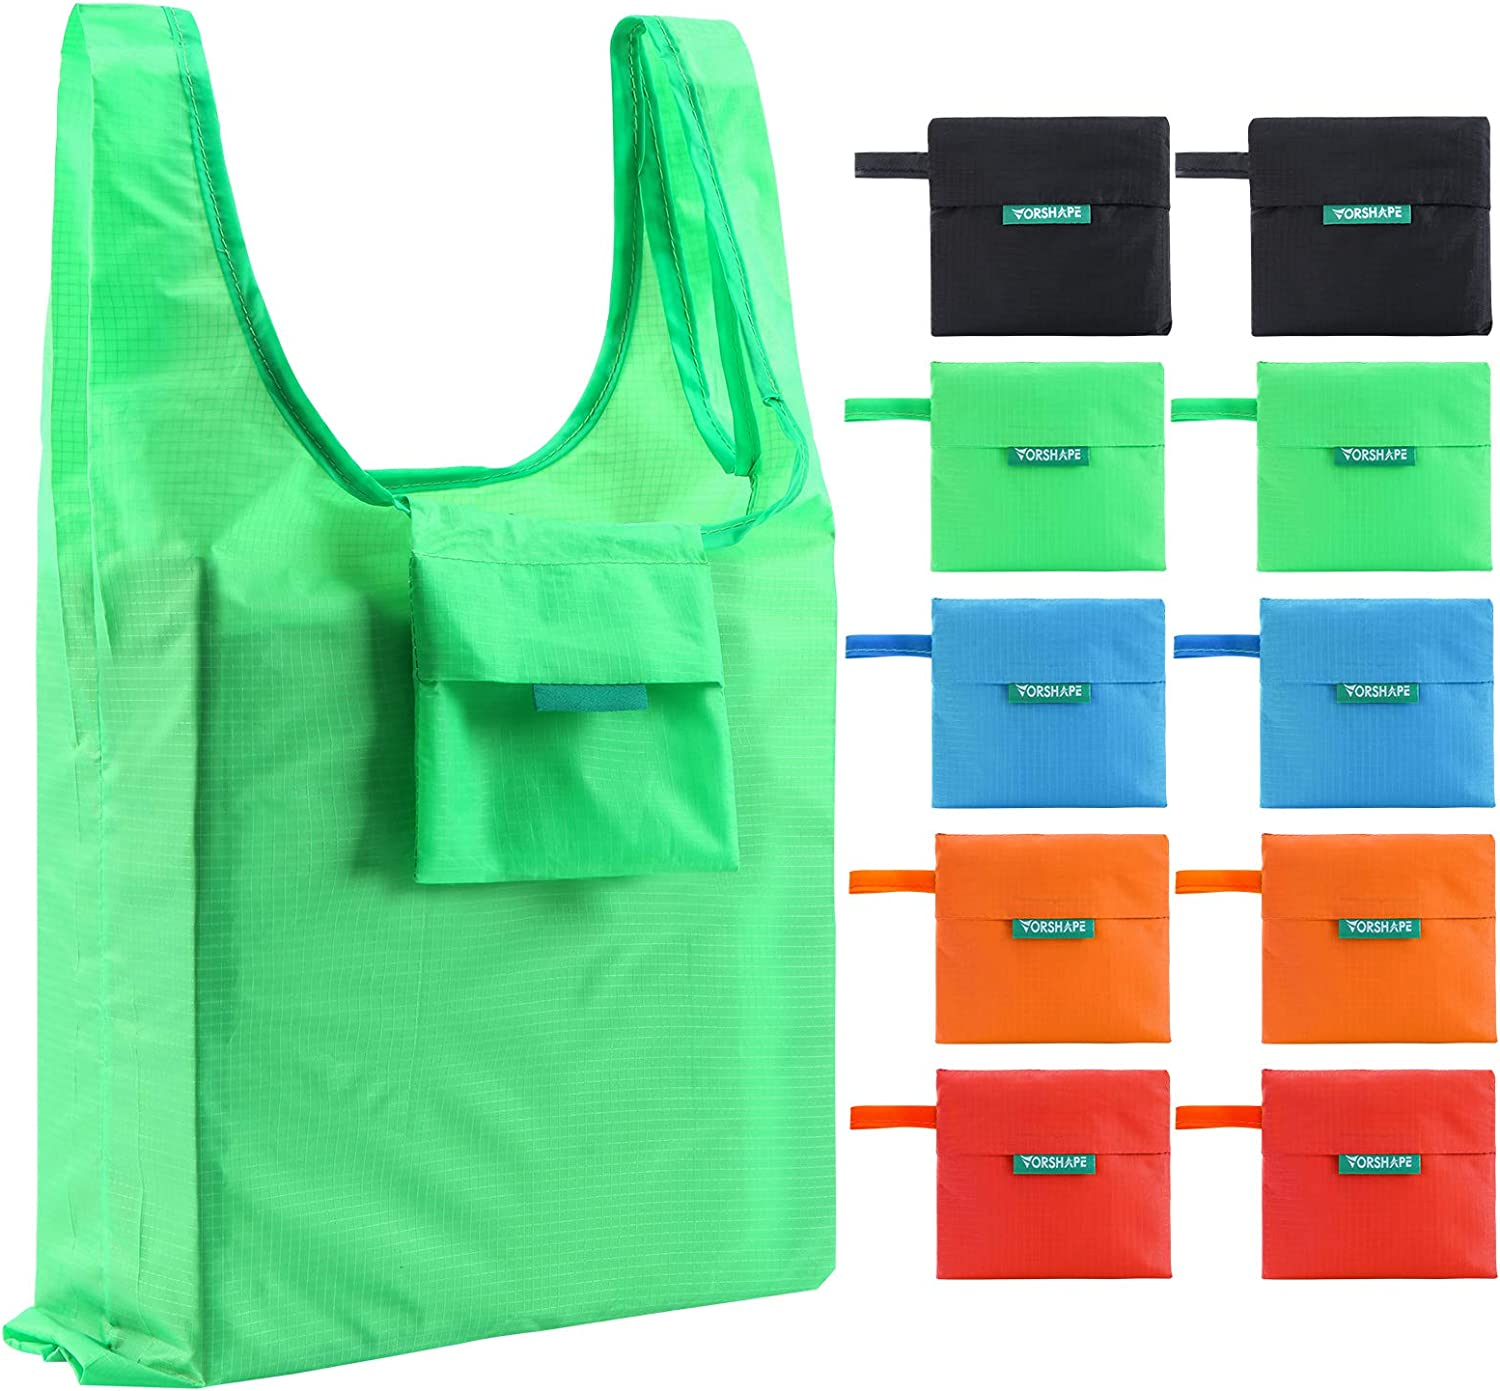 10 Packs Reusable Grocery Bags Large Shopping Bags with 50LBS - Machine Washable - Foldable Tote Bags with Rip-Stop Polyester Material, Food Safe, Colorful (Black, Blue, Red, Green, Orange)